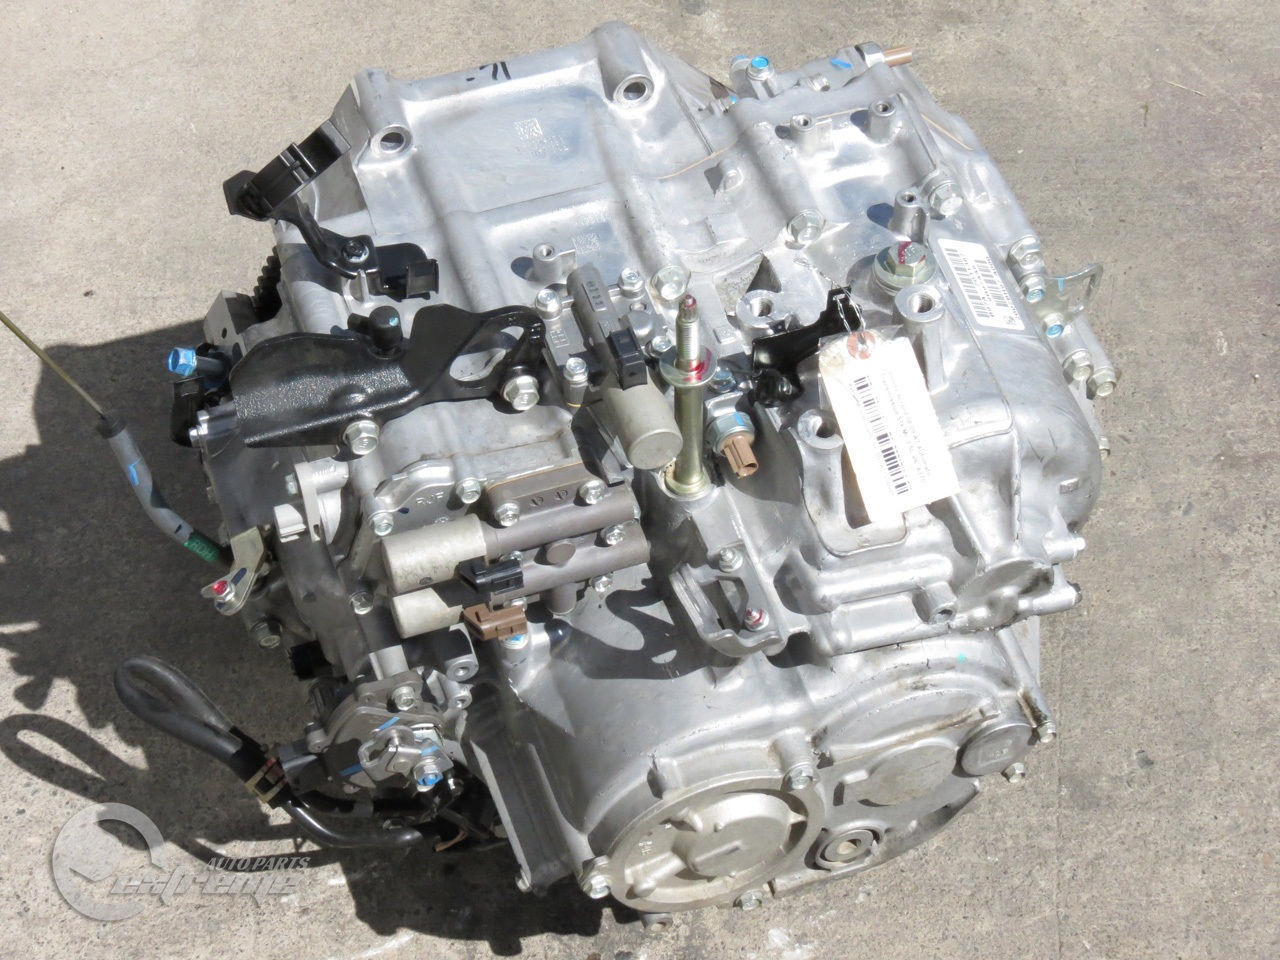 ... Honda Accord 08-09 AT Automatic Transmission Unkown Miles, ...